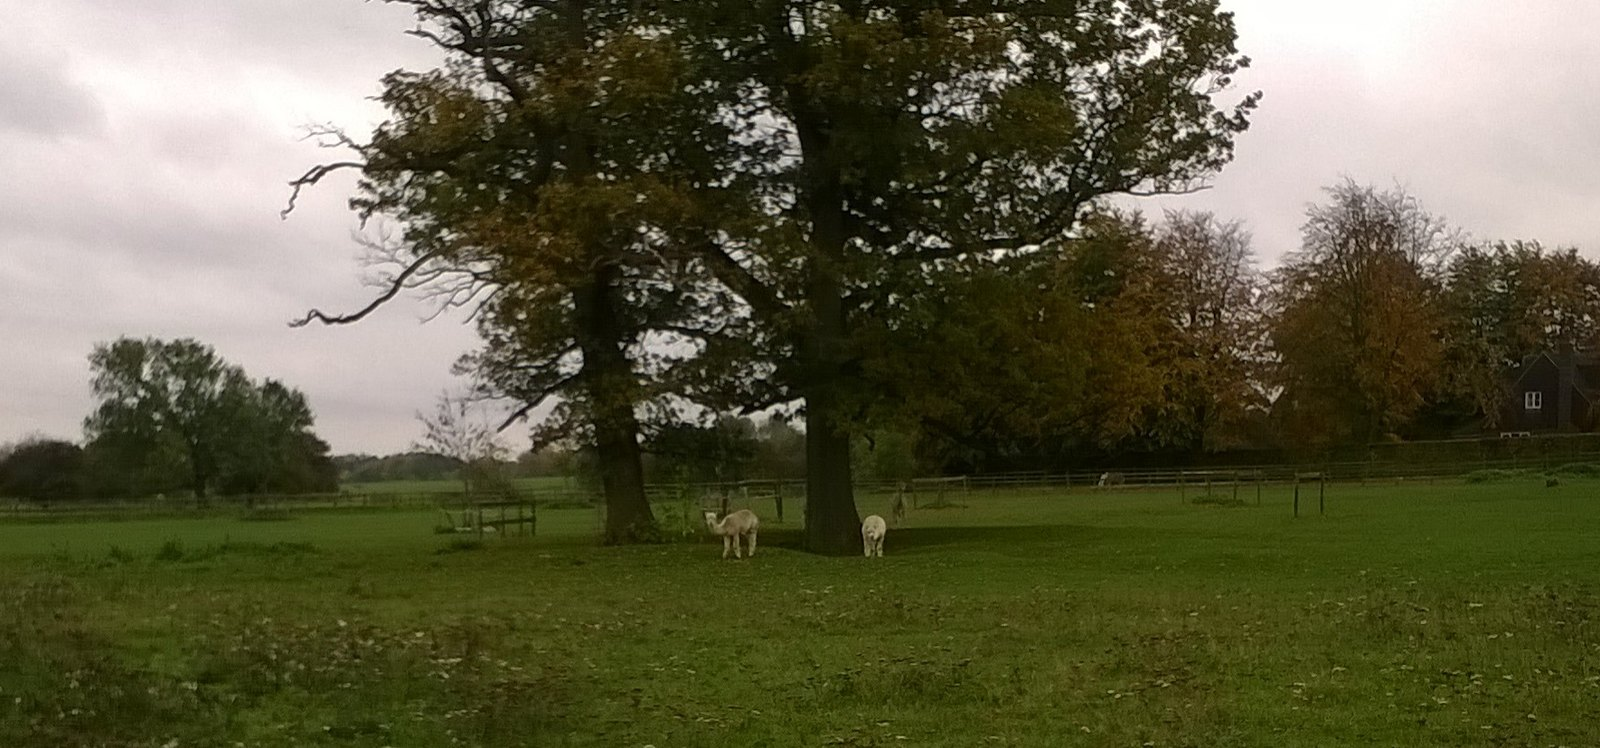 Wooly animals near Little Gaddesden Alpacas or llamas